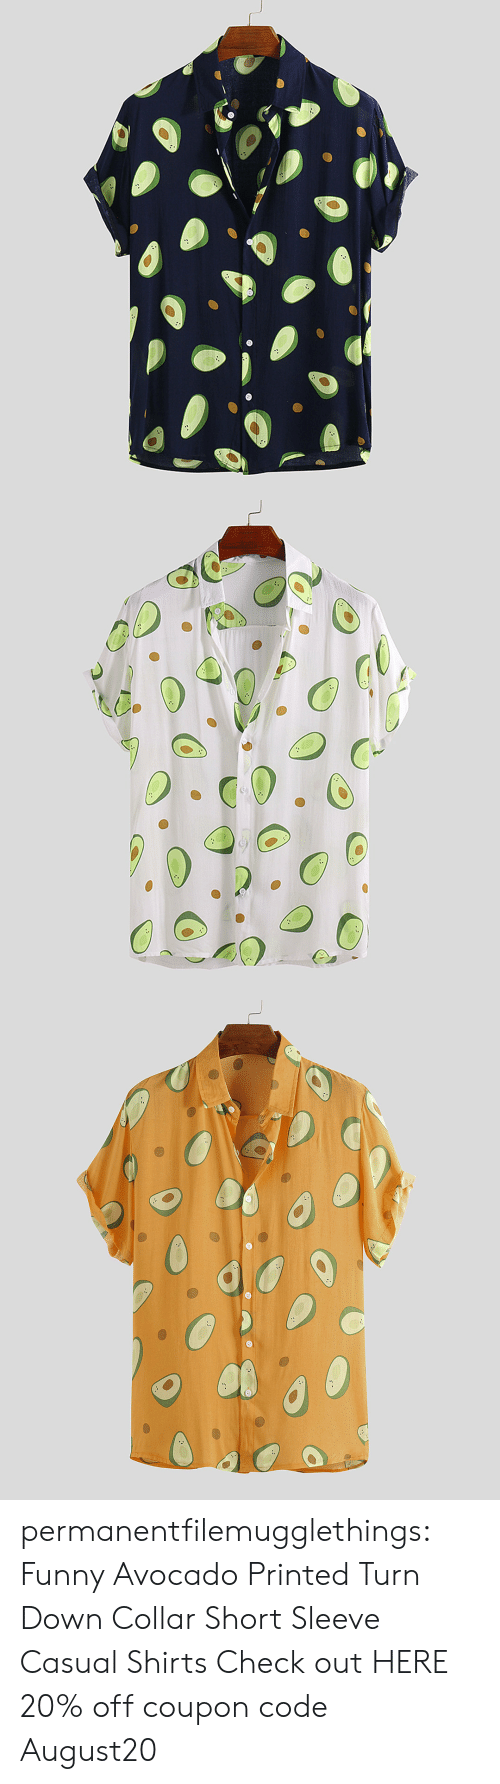 Funny, Tumblr, and Avocado: permanentfilemugglethings: Funny Avocado Printed Turn Down Collar Short Sleeve Casual Shirts Check out HERE 20% off coupon code:August20